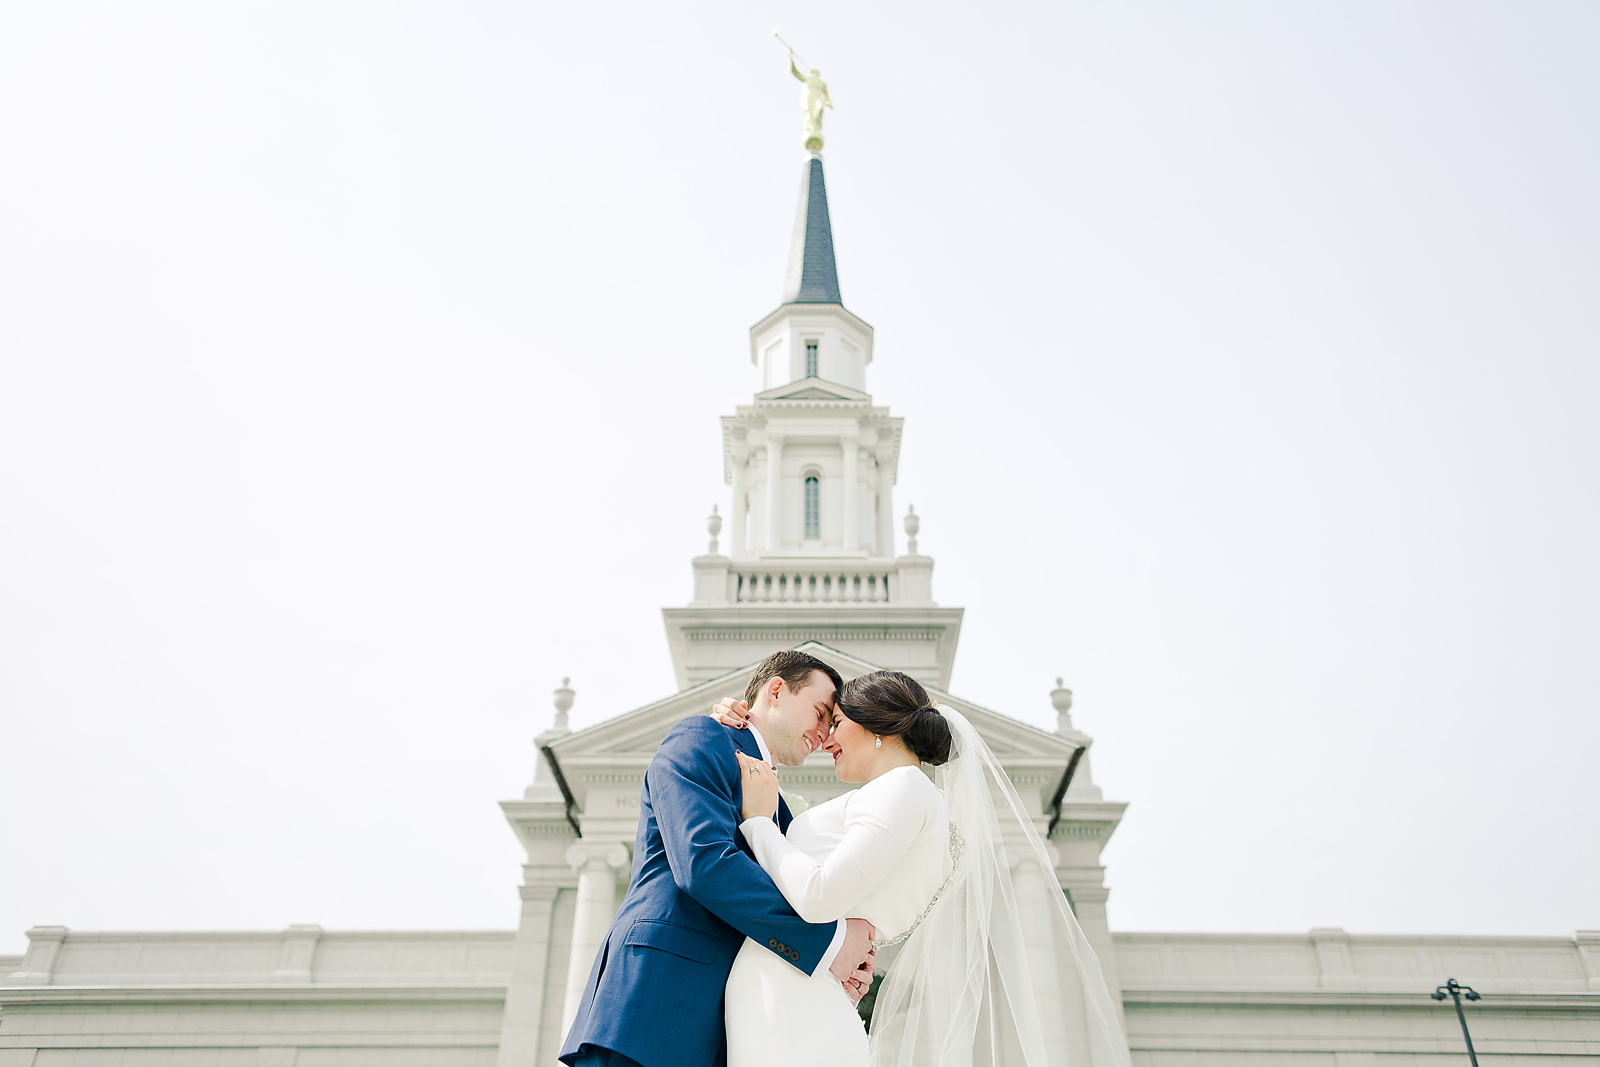 lds_hartford_temple_wedding_005.jpg